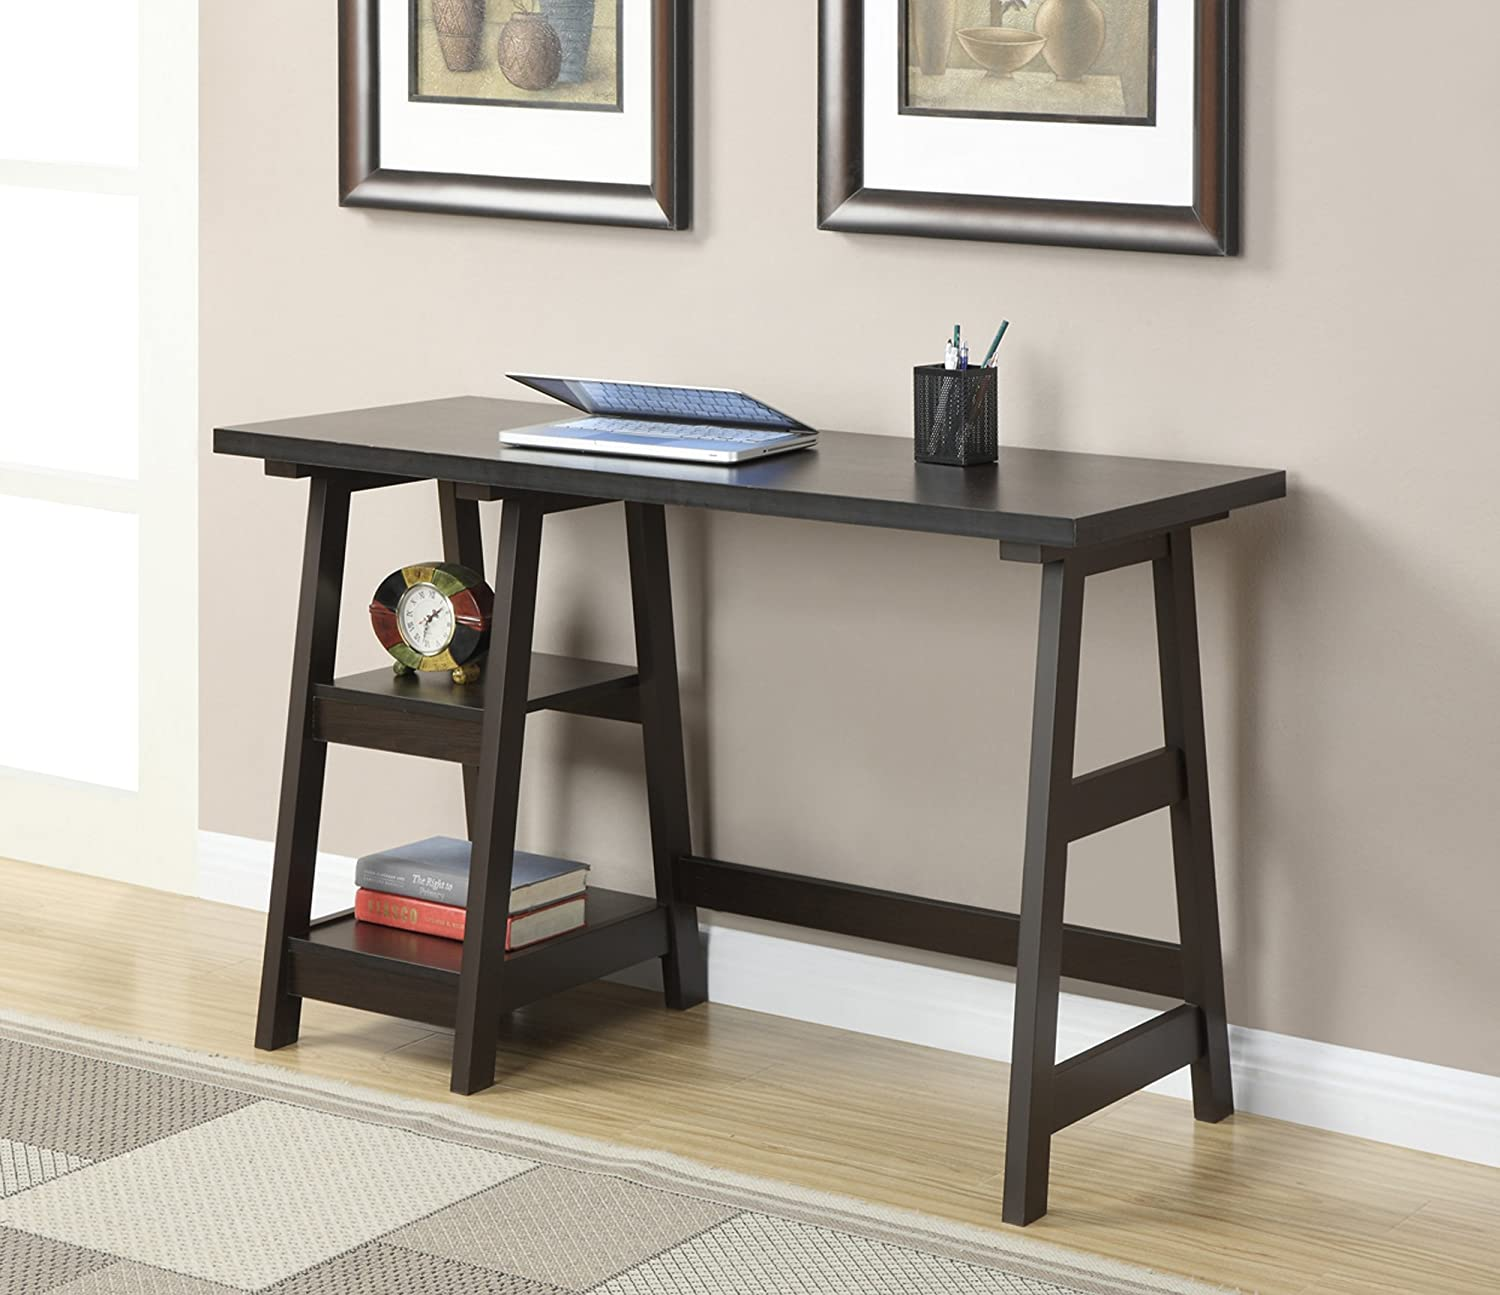 Amazoncom Convenience Concepts DesignsGo Trestle Desk Espresso - Wayfair trestle table